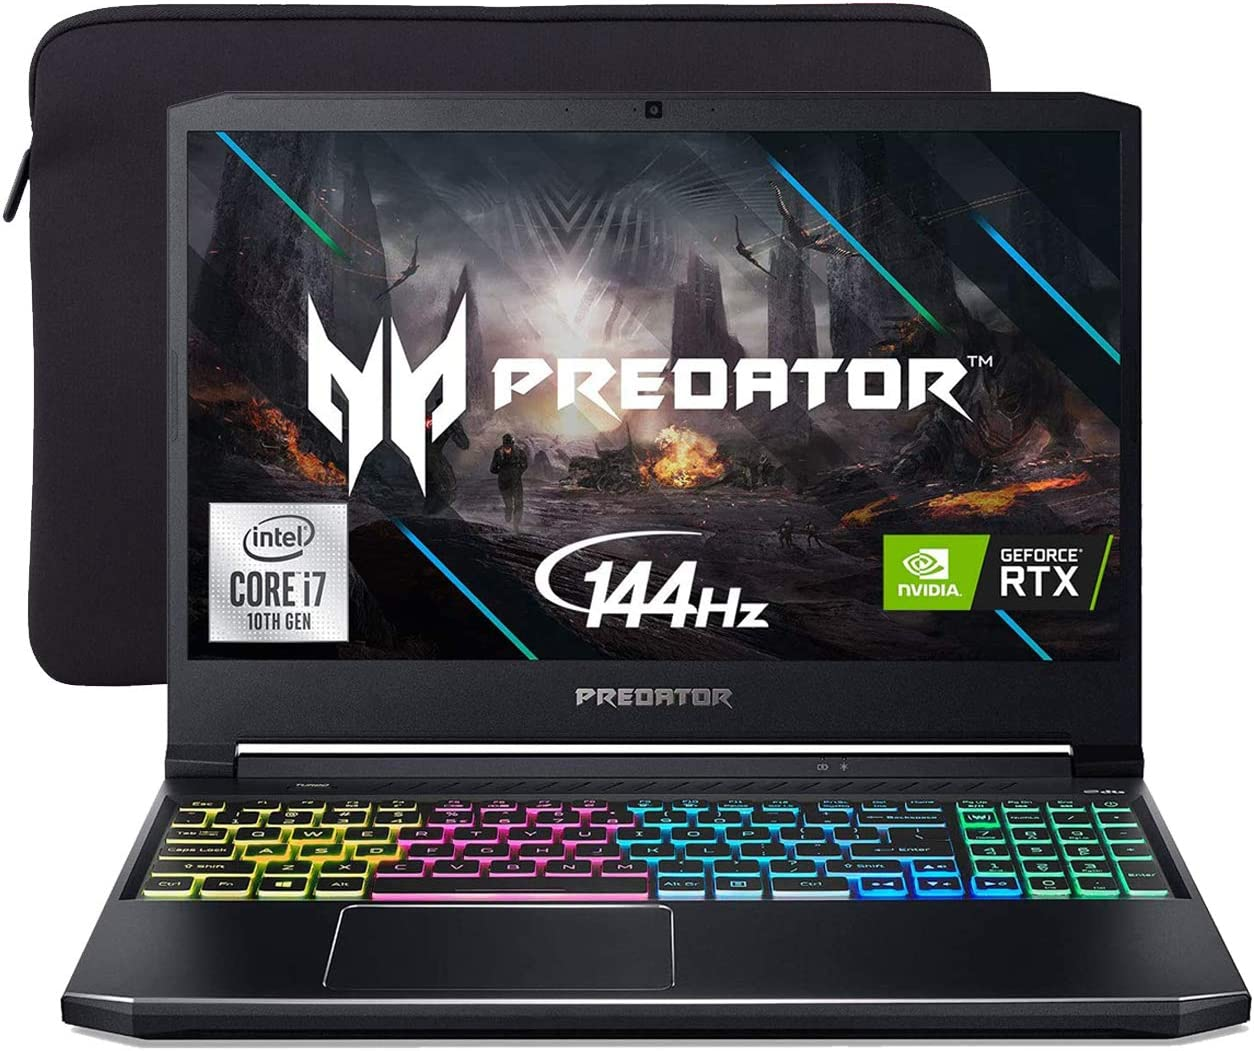 """Acer Predator Helios 300 144Hz Gaming Laptop, 15.6"""" 3ms IPS FHD, RTX 2060 OC, i7-10750H 6-Cores up to 5.00 GHz, 32GB RAM, 2TB SSD, Killer Network, RGB KB, WiFi 6, Mytrix Sleeve, Win 10"""